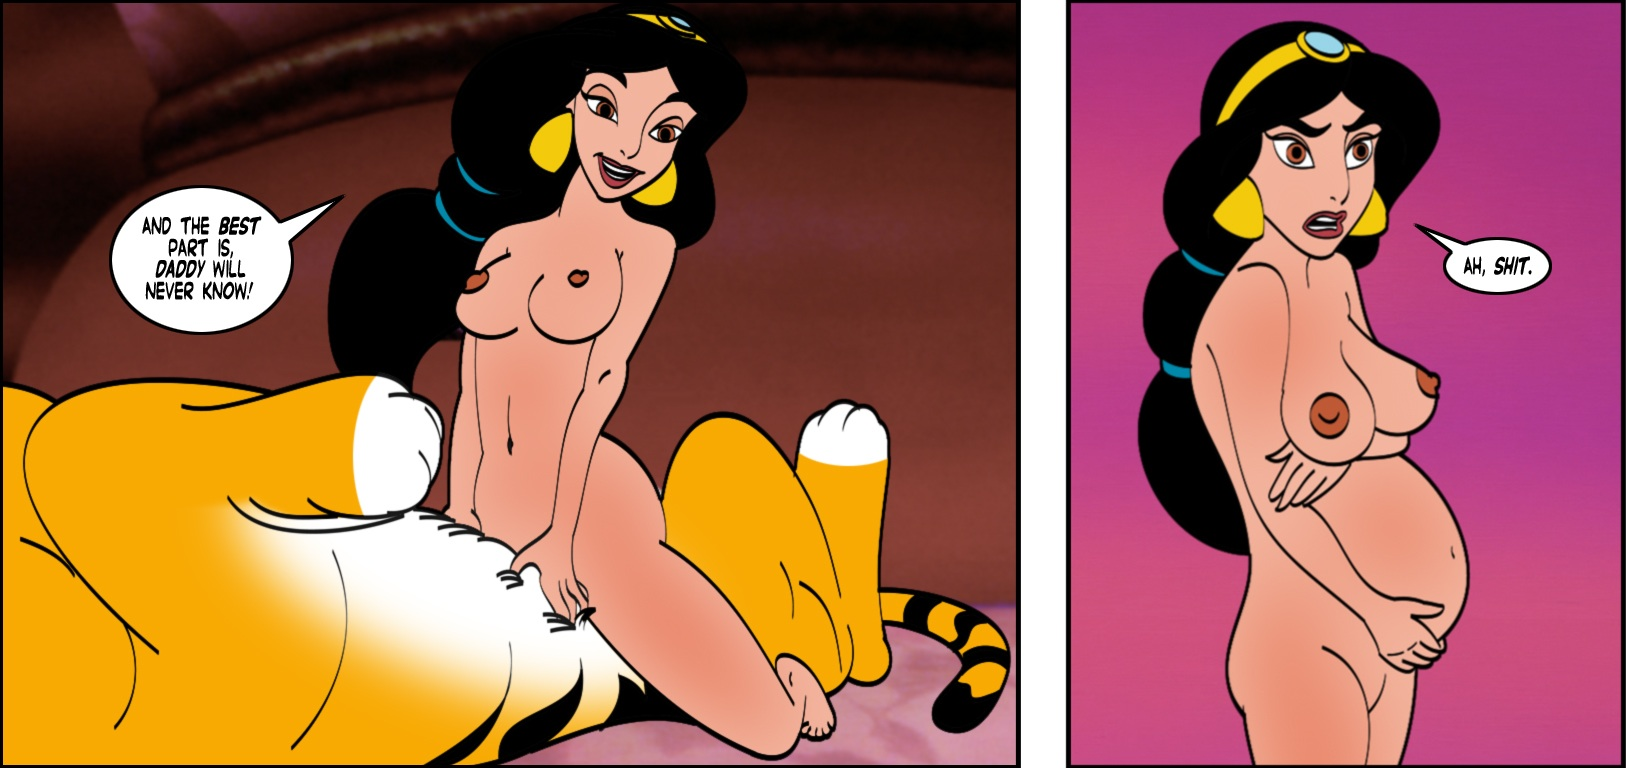 Jasmine aladdin sex comic